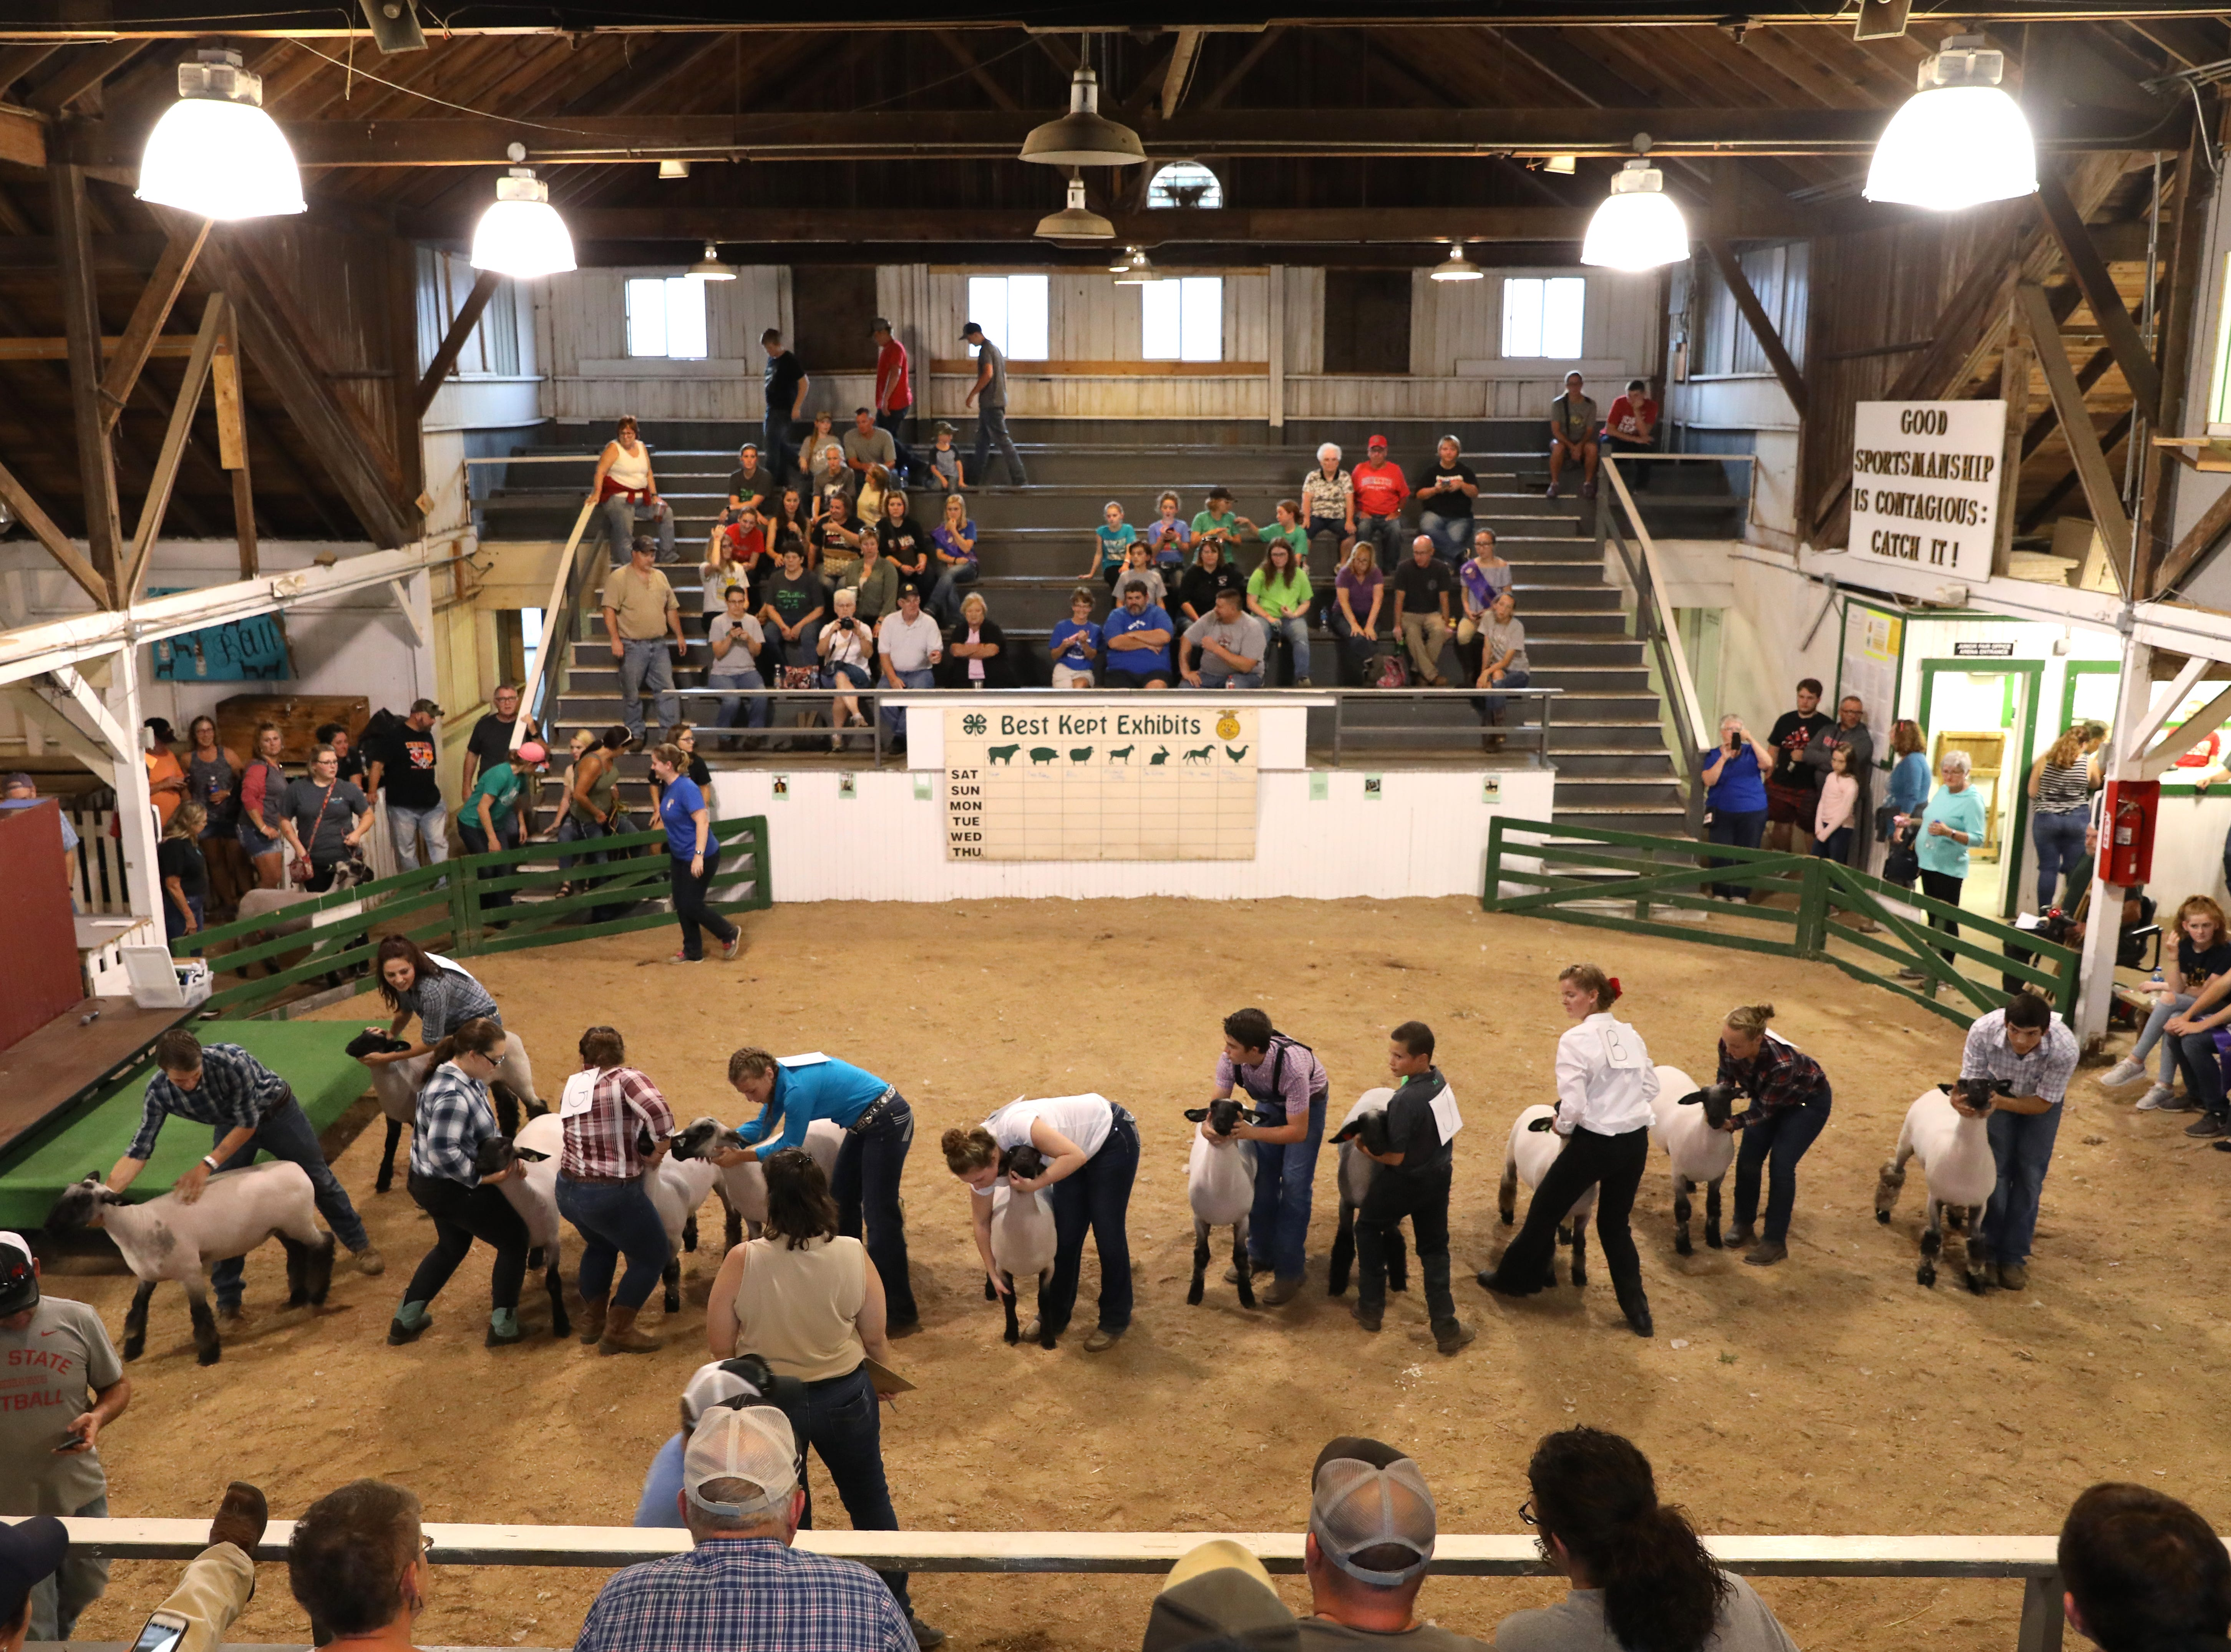 Contestants show lambs during the Showman of Showmen at the Coshocton County Fair on Wednesday.